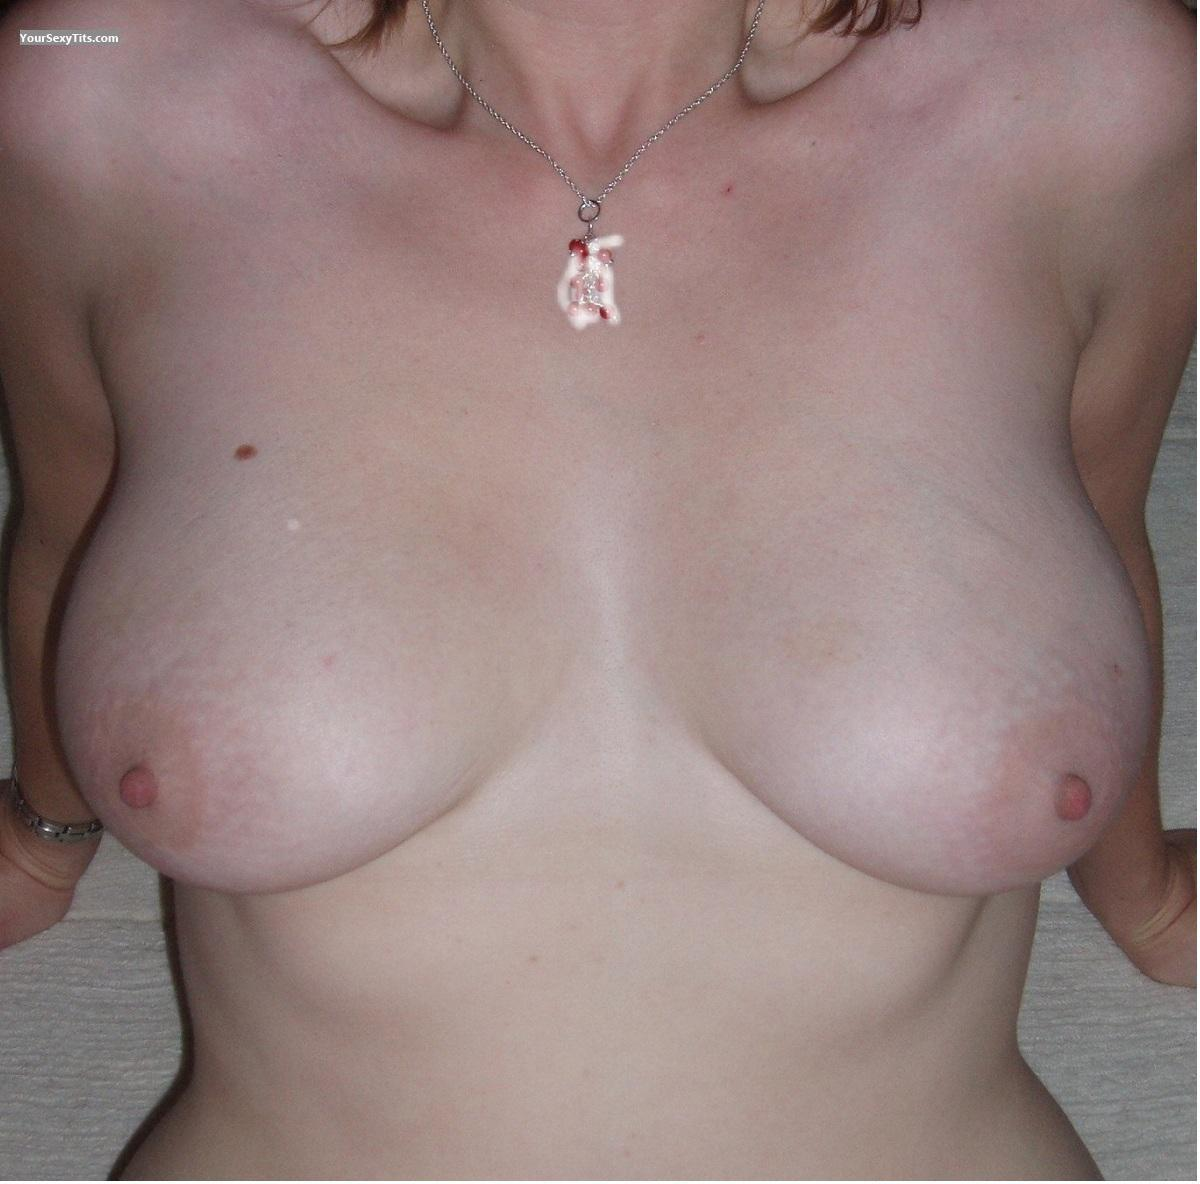 Tit Flash: Girlfriend's Big Tits - Jaynee from New Zealand